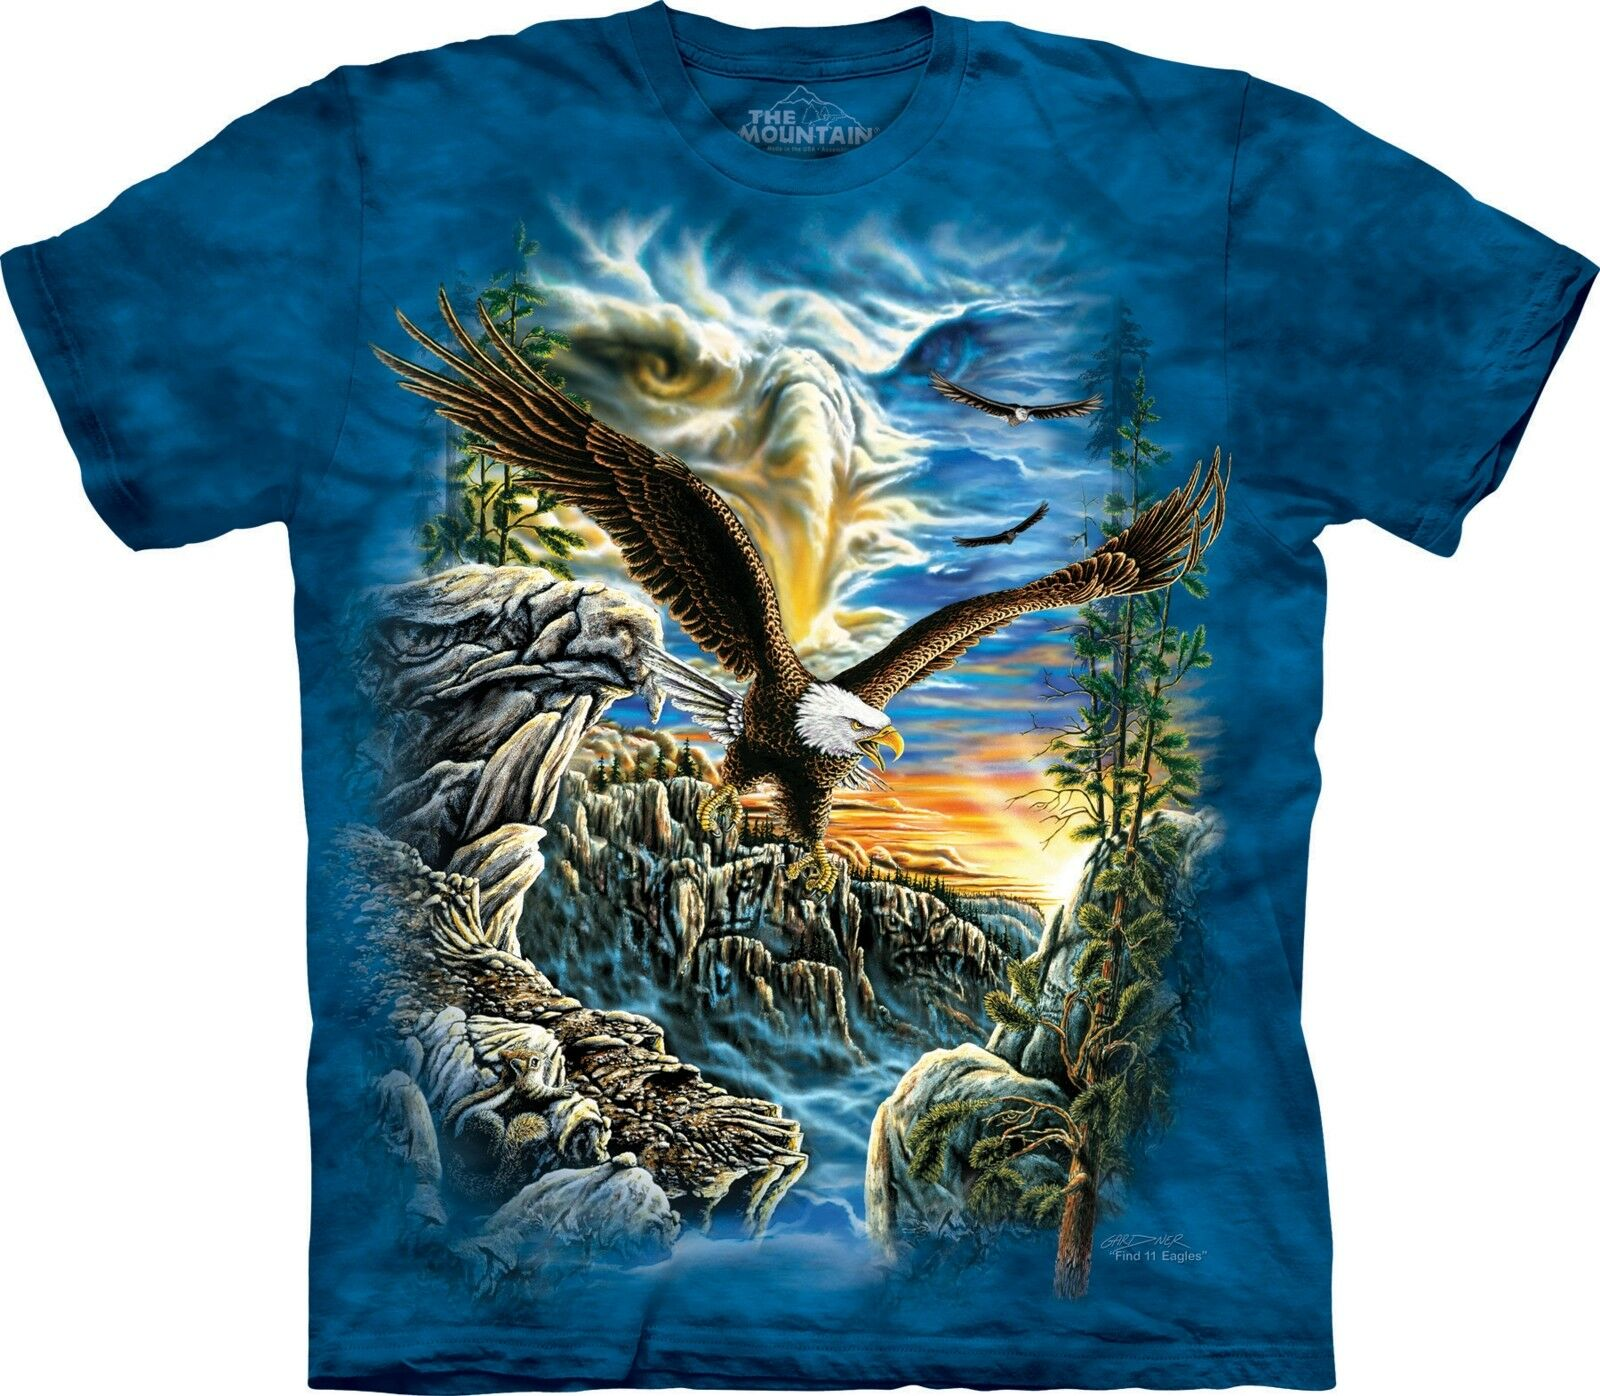 Find 11 Eagles Bird T Shirt Adult Unisex The Mountain